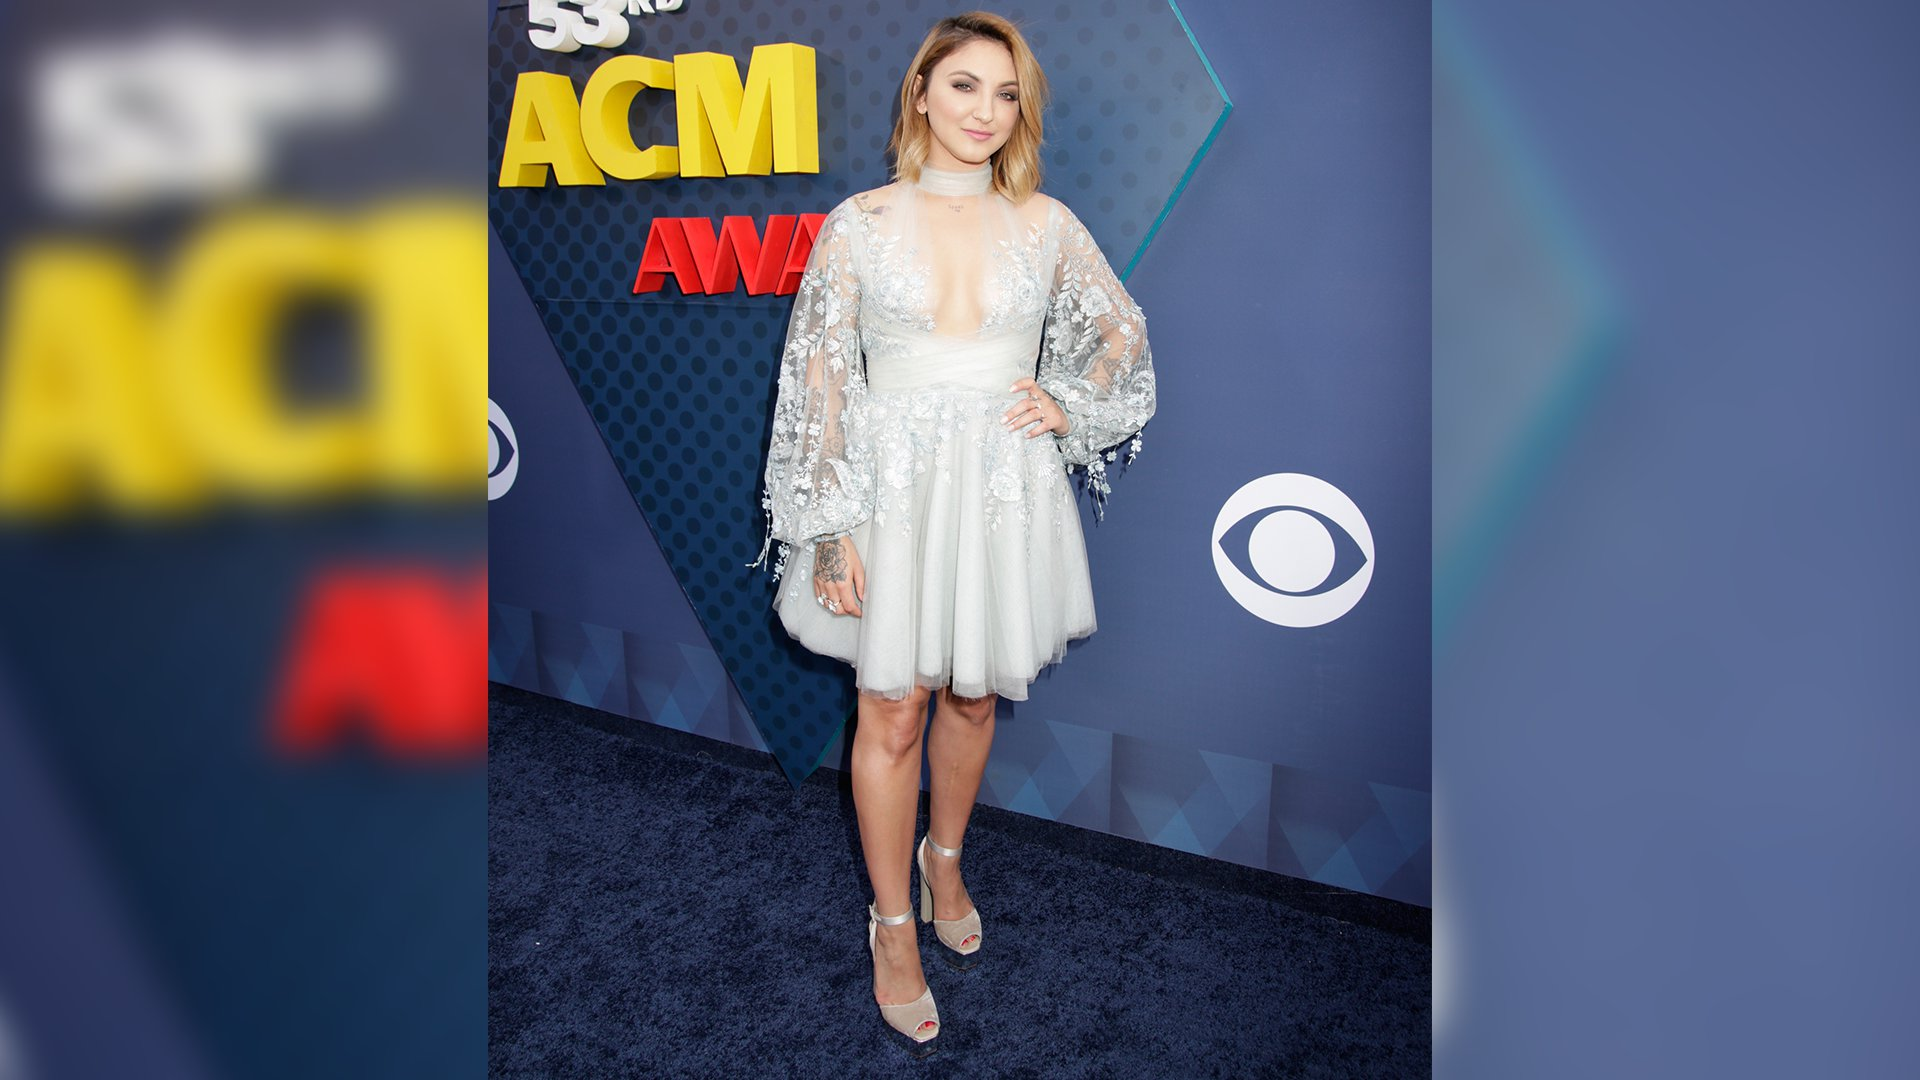 Pop singer Julia Michaels floats down the ACM red carpet before performing